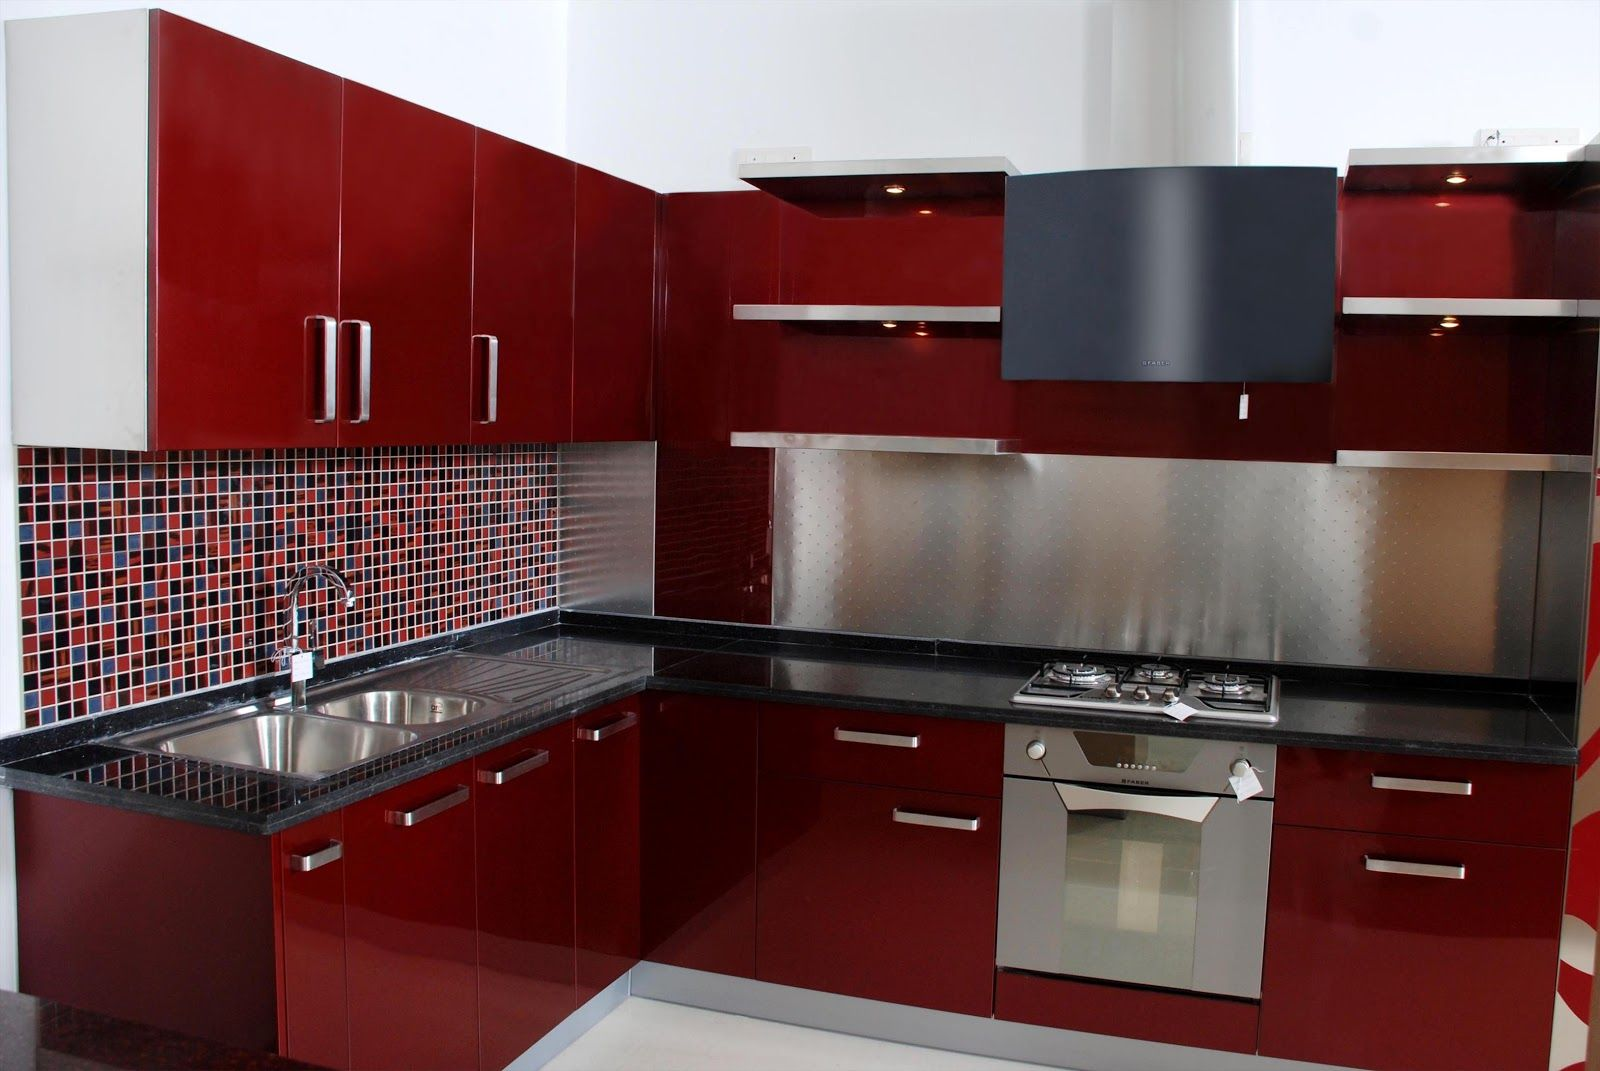 parallel kitchen design india - Google Search | Kitchen ...